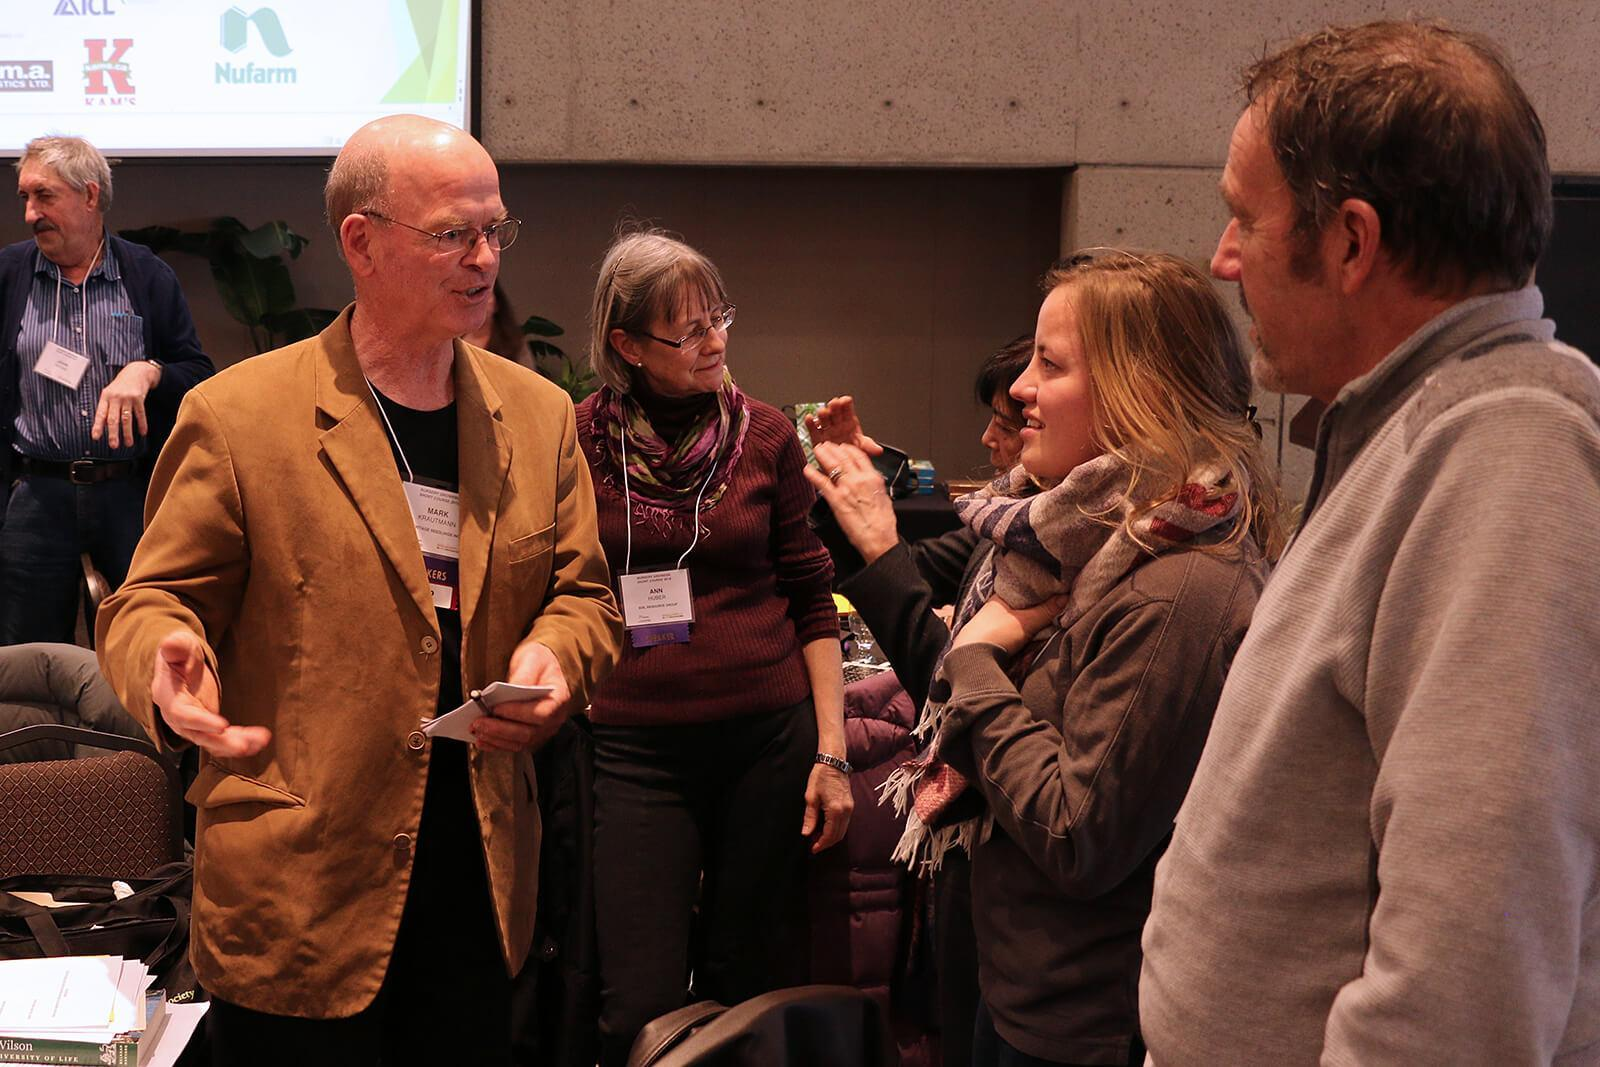 Keynote speaker, Mark Krautmann (left), talks with attendees during a break.